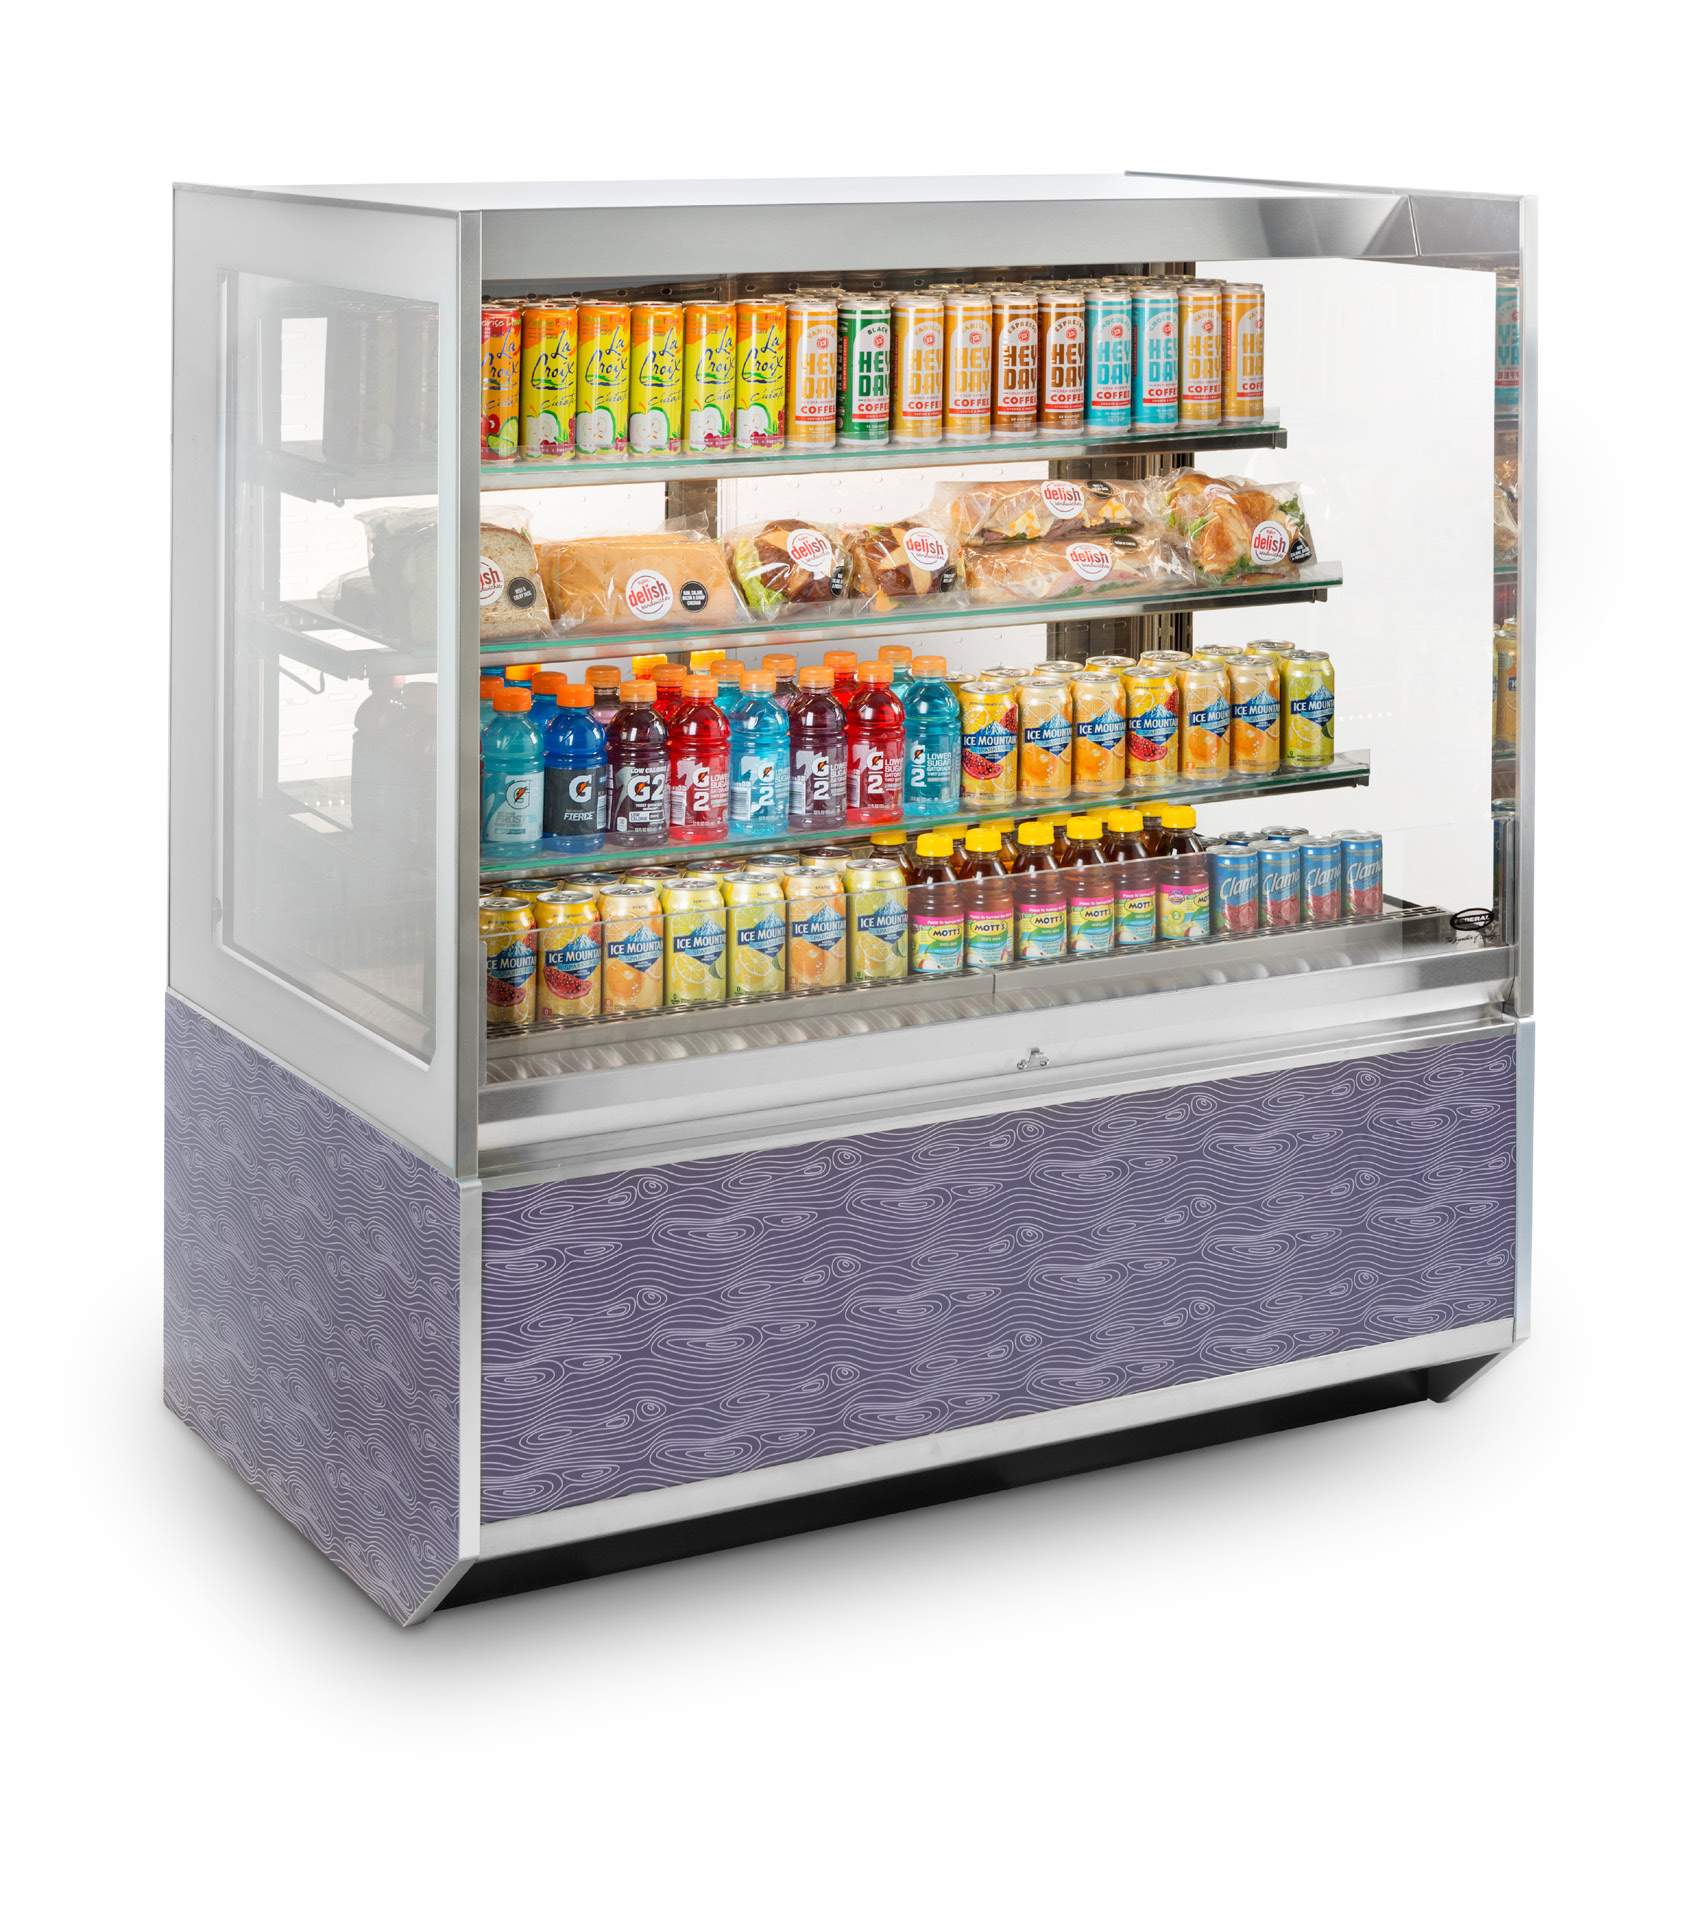 itrss3626-b18-italian-glass-refrigerated-self-serve-merchandiserabc9928d2d90456eb03ba16c9044e56f1